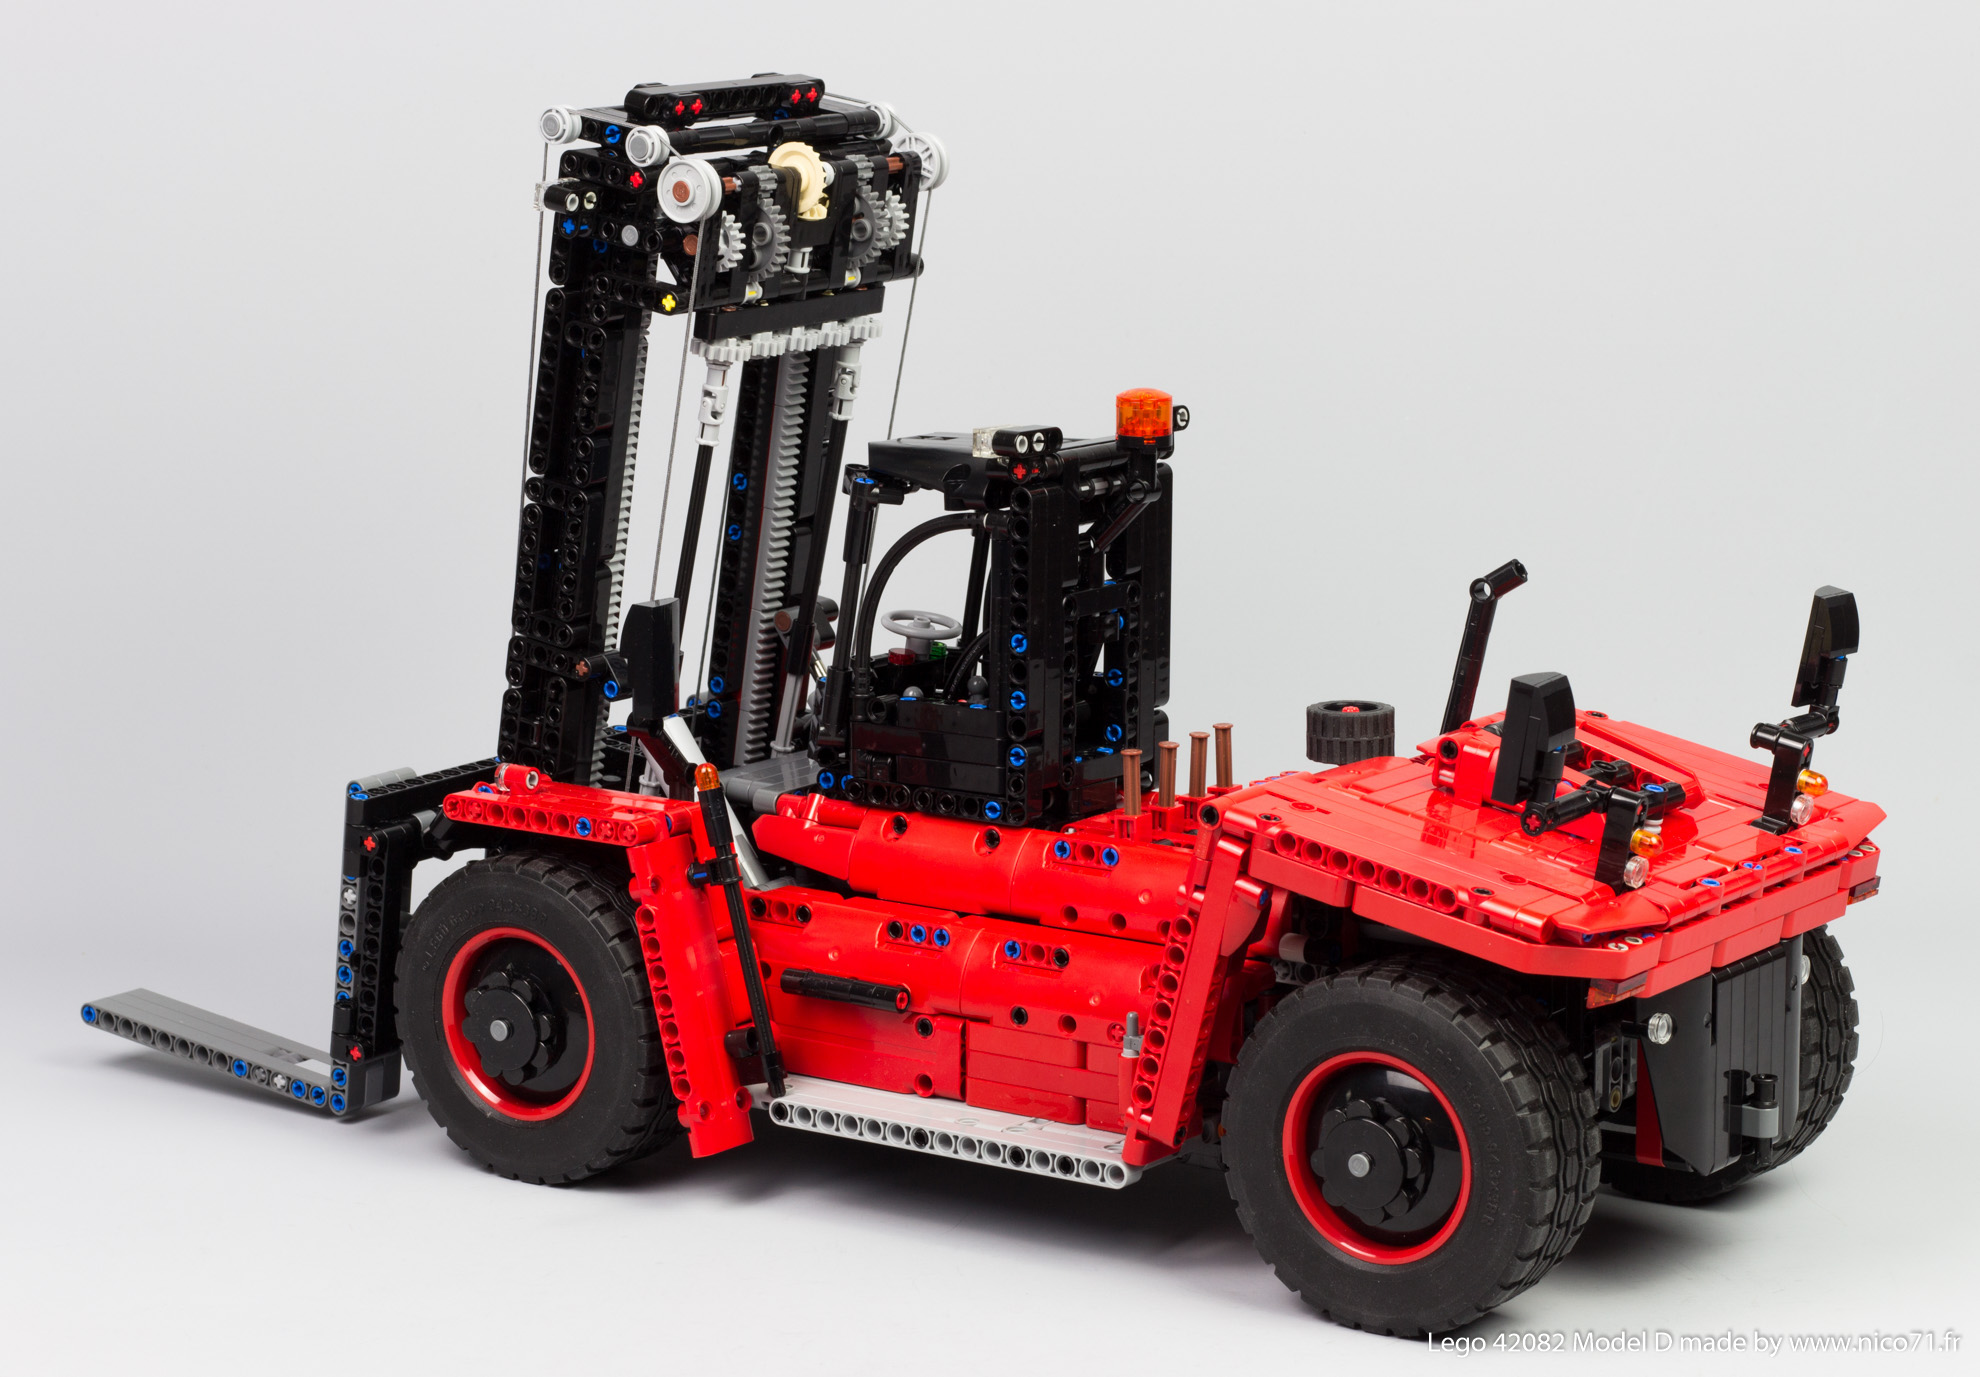 Lego-42082-Model-D-Heavy-Forklift-3